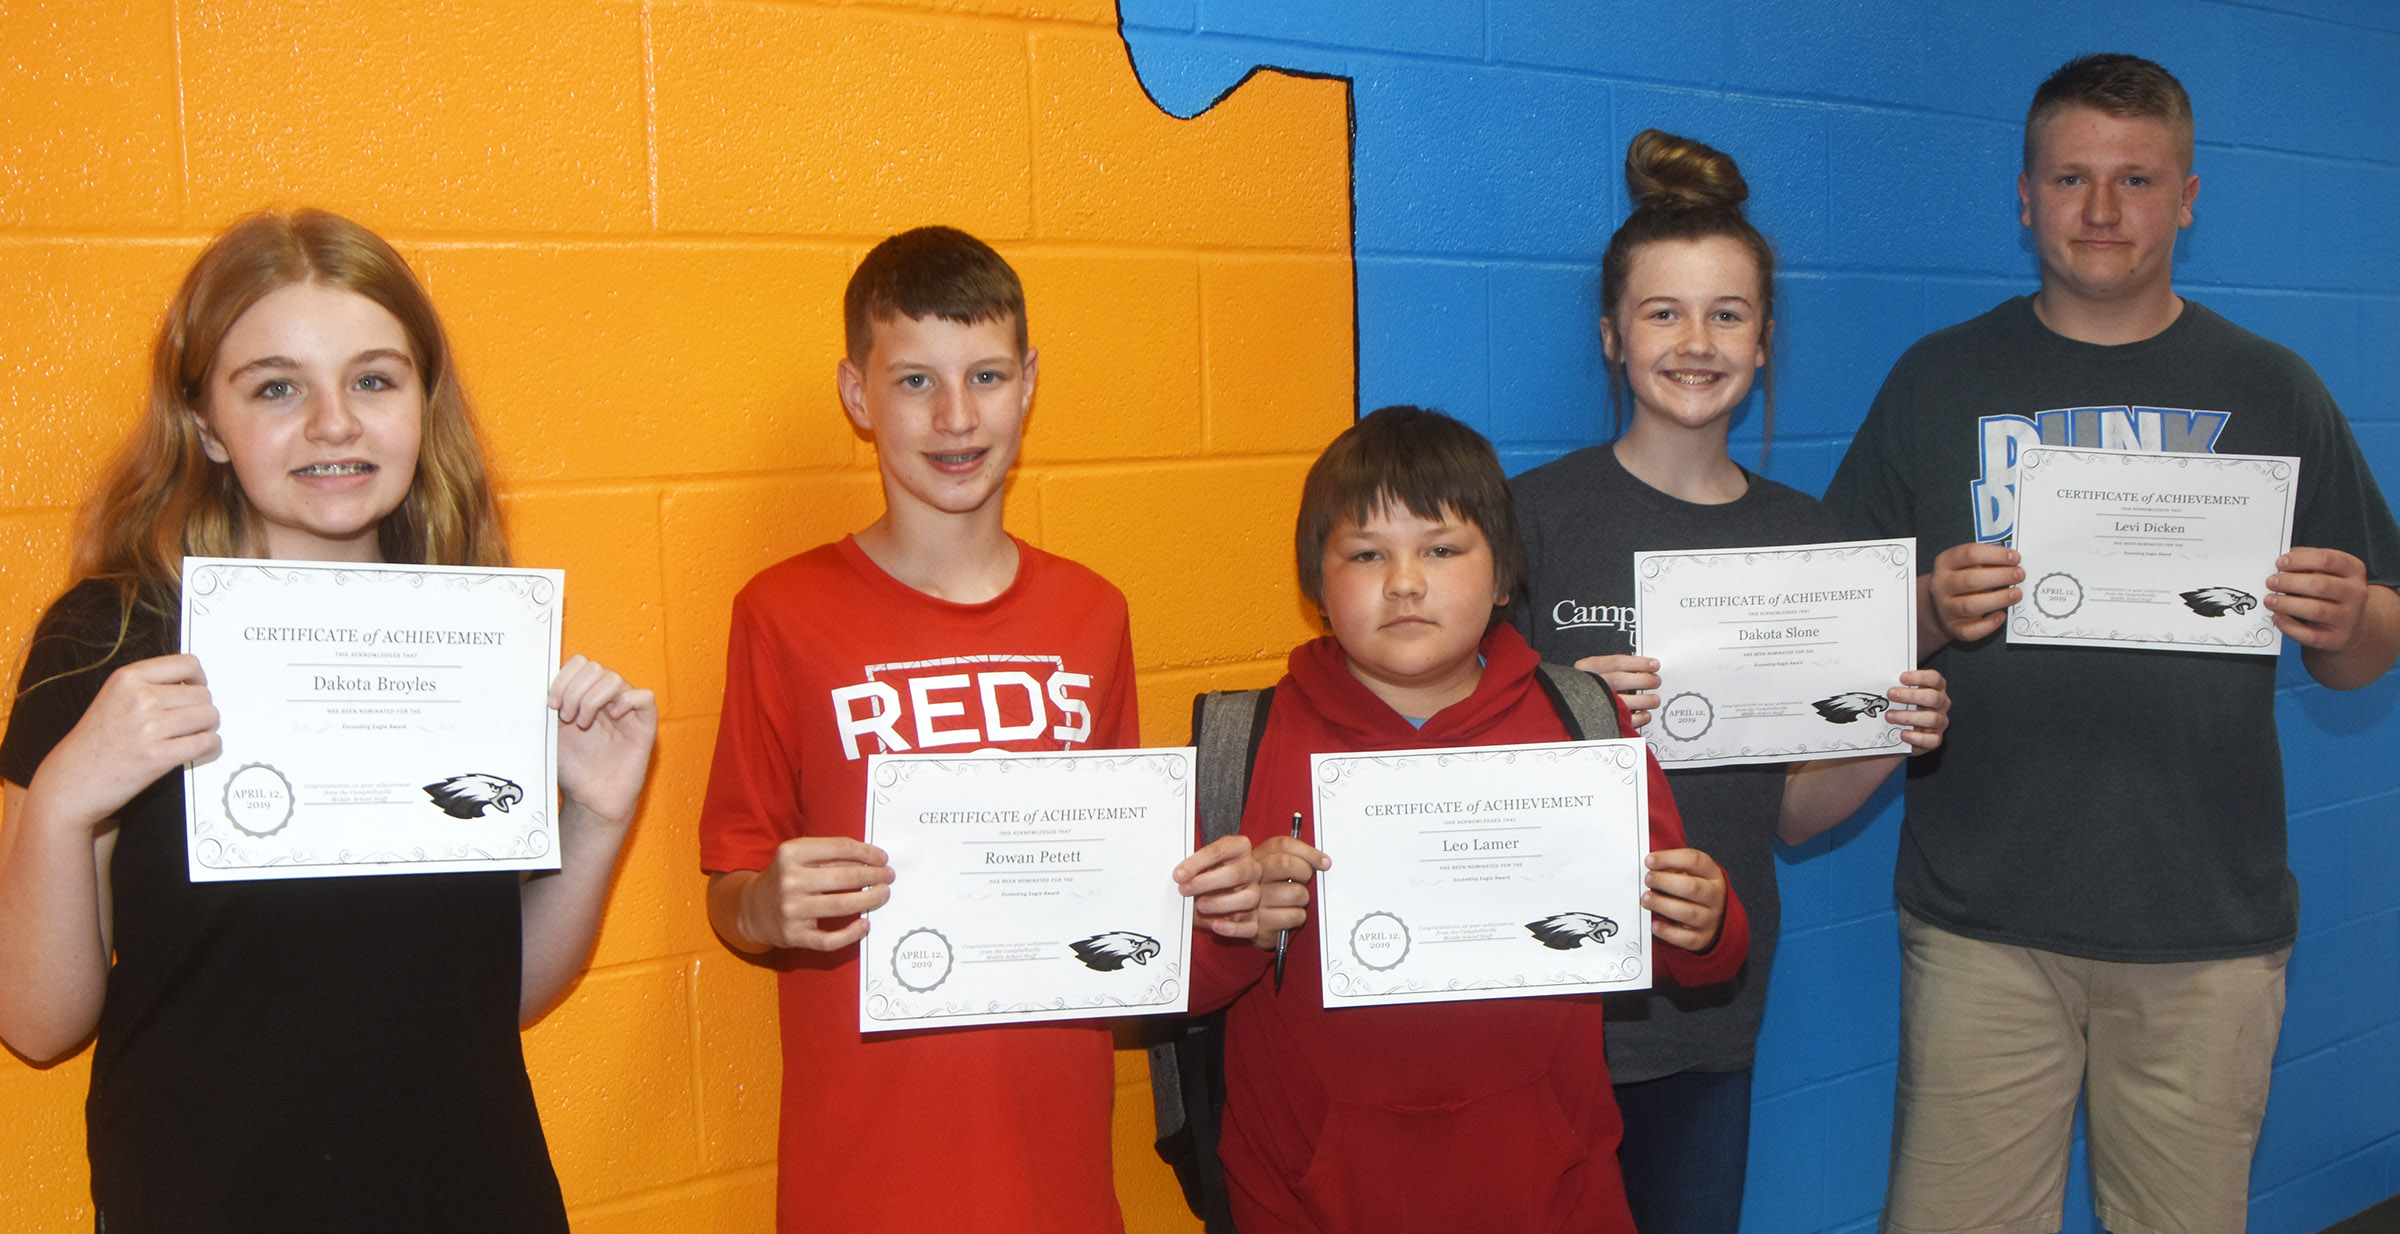 CMS Exceeding Eagles for the week of April 8 are, from left, sixth-graders Dakota Broyles and Rowan Petett, seventh-grader Leo Lamer and eighth-graders Dakota Slone and Levi Dicken. Absent from the photo is seventh-grader Piper Ritchie.